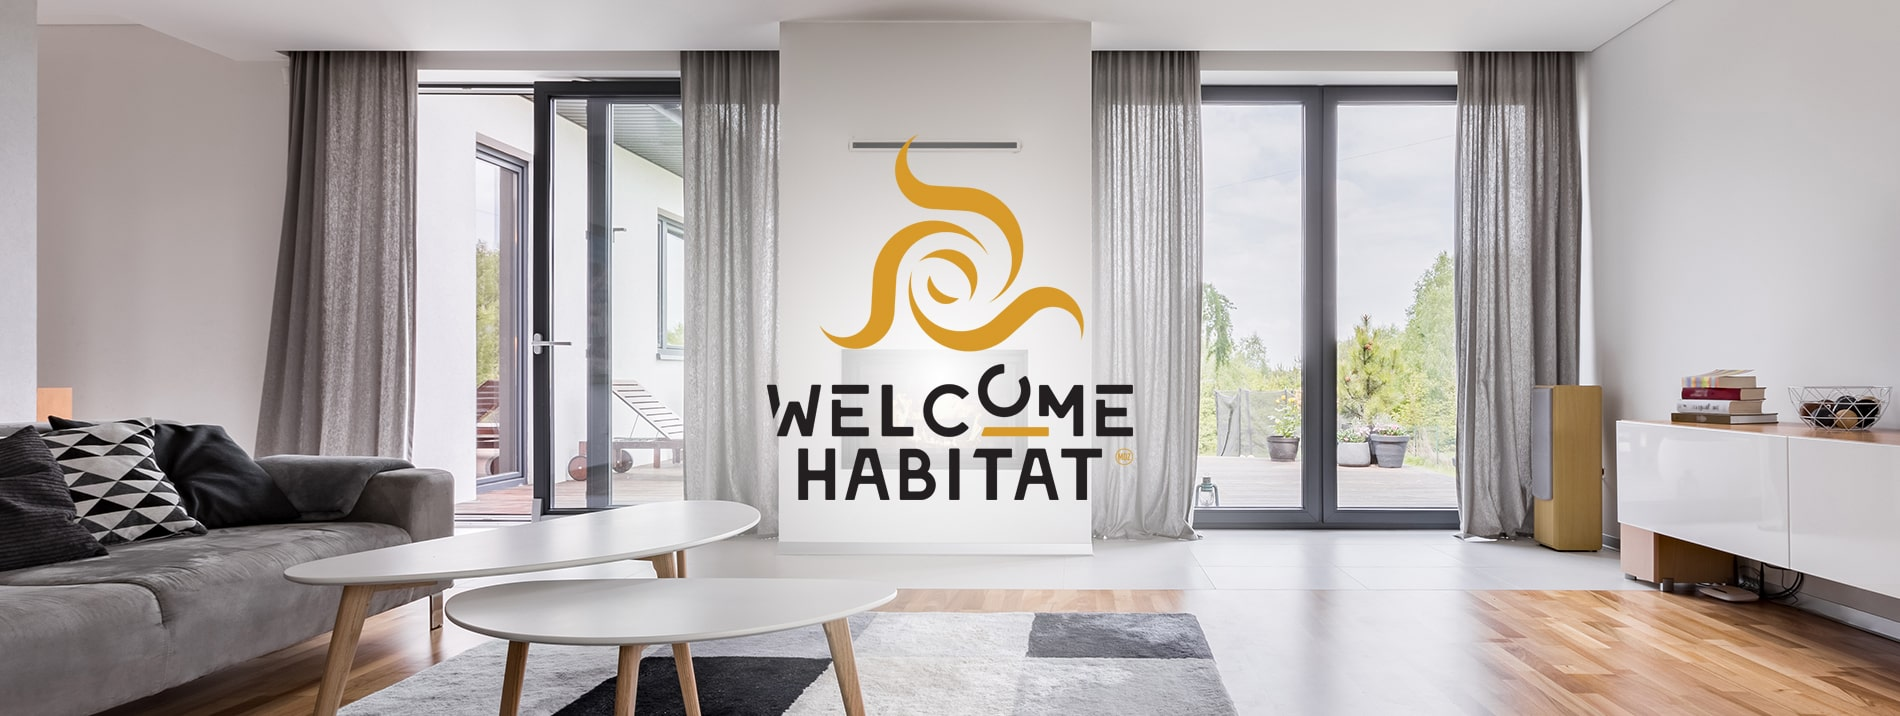 Welcome Habitat